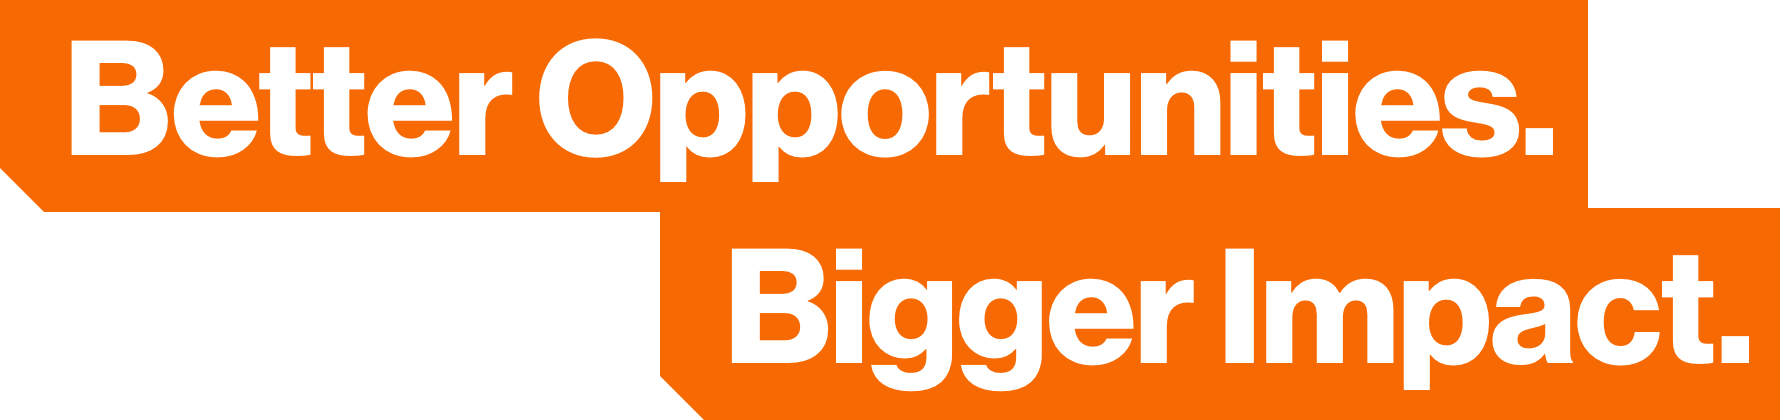 Graphic text that says Better Opportunities. Bigger Impact.